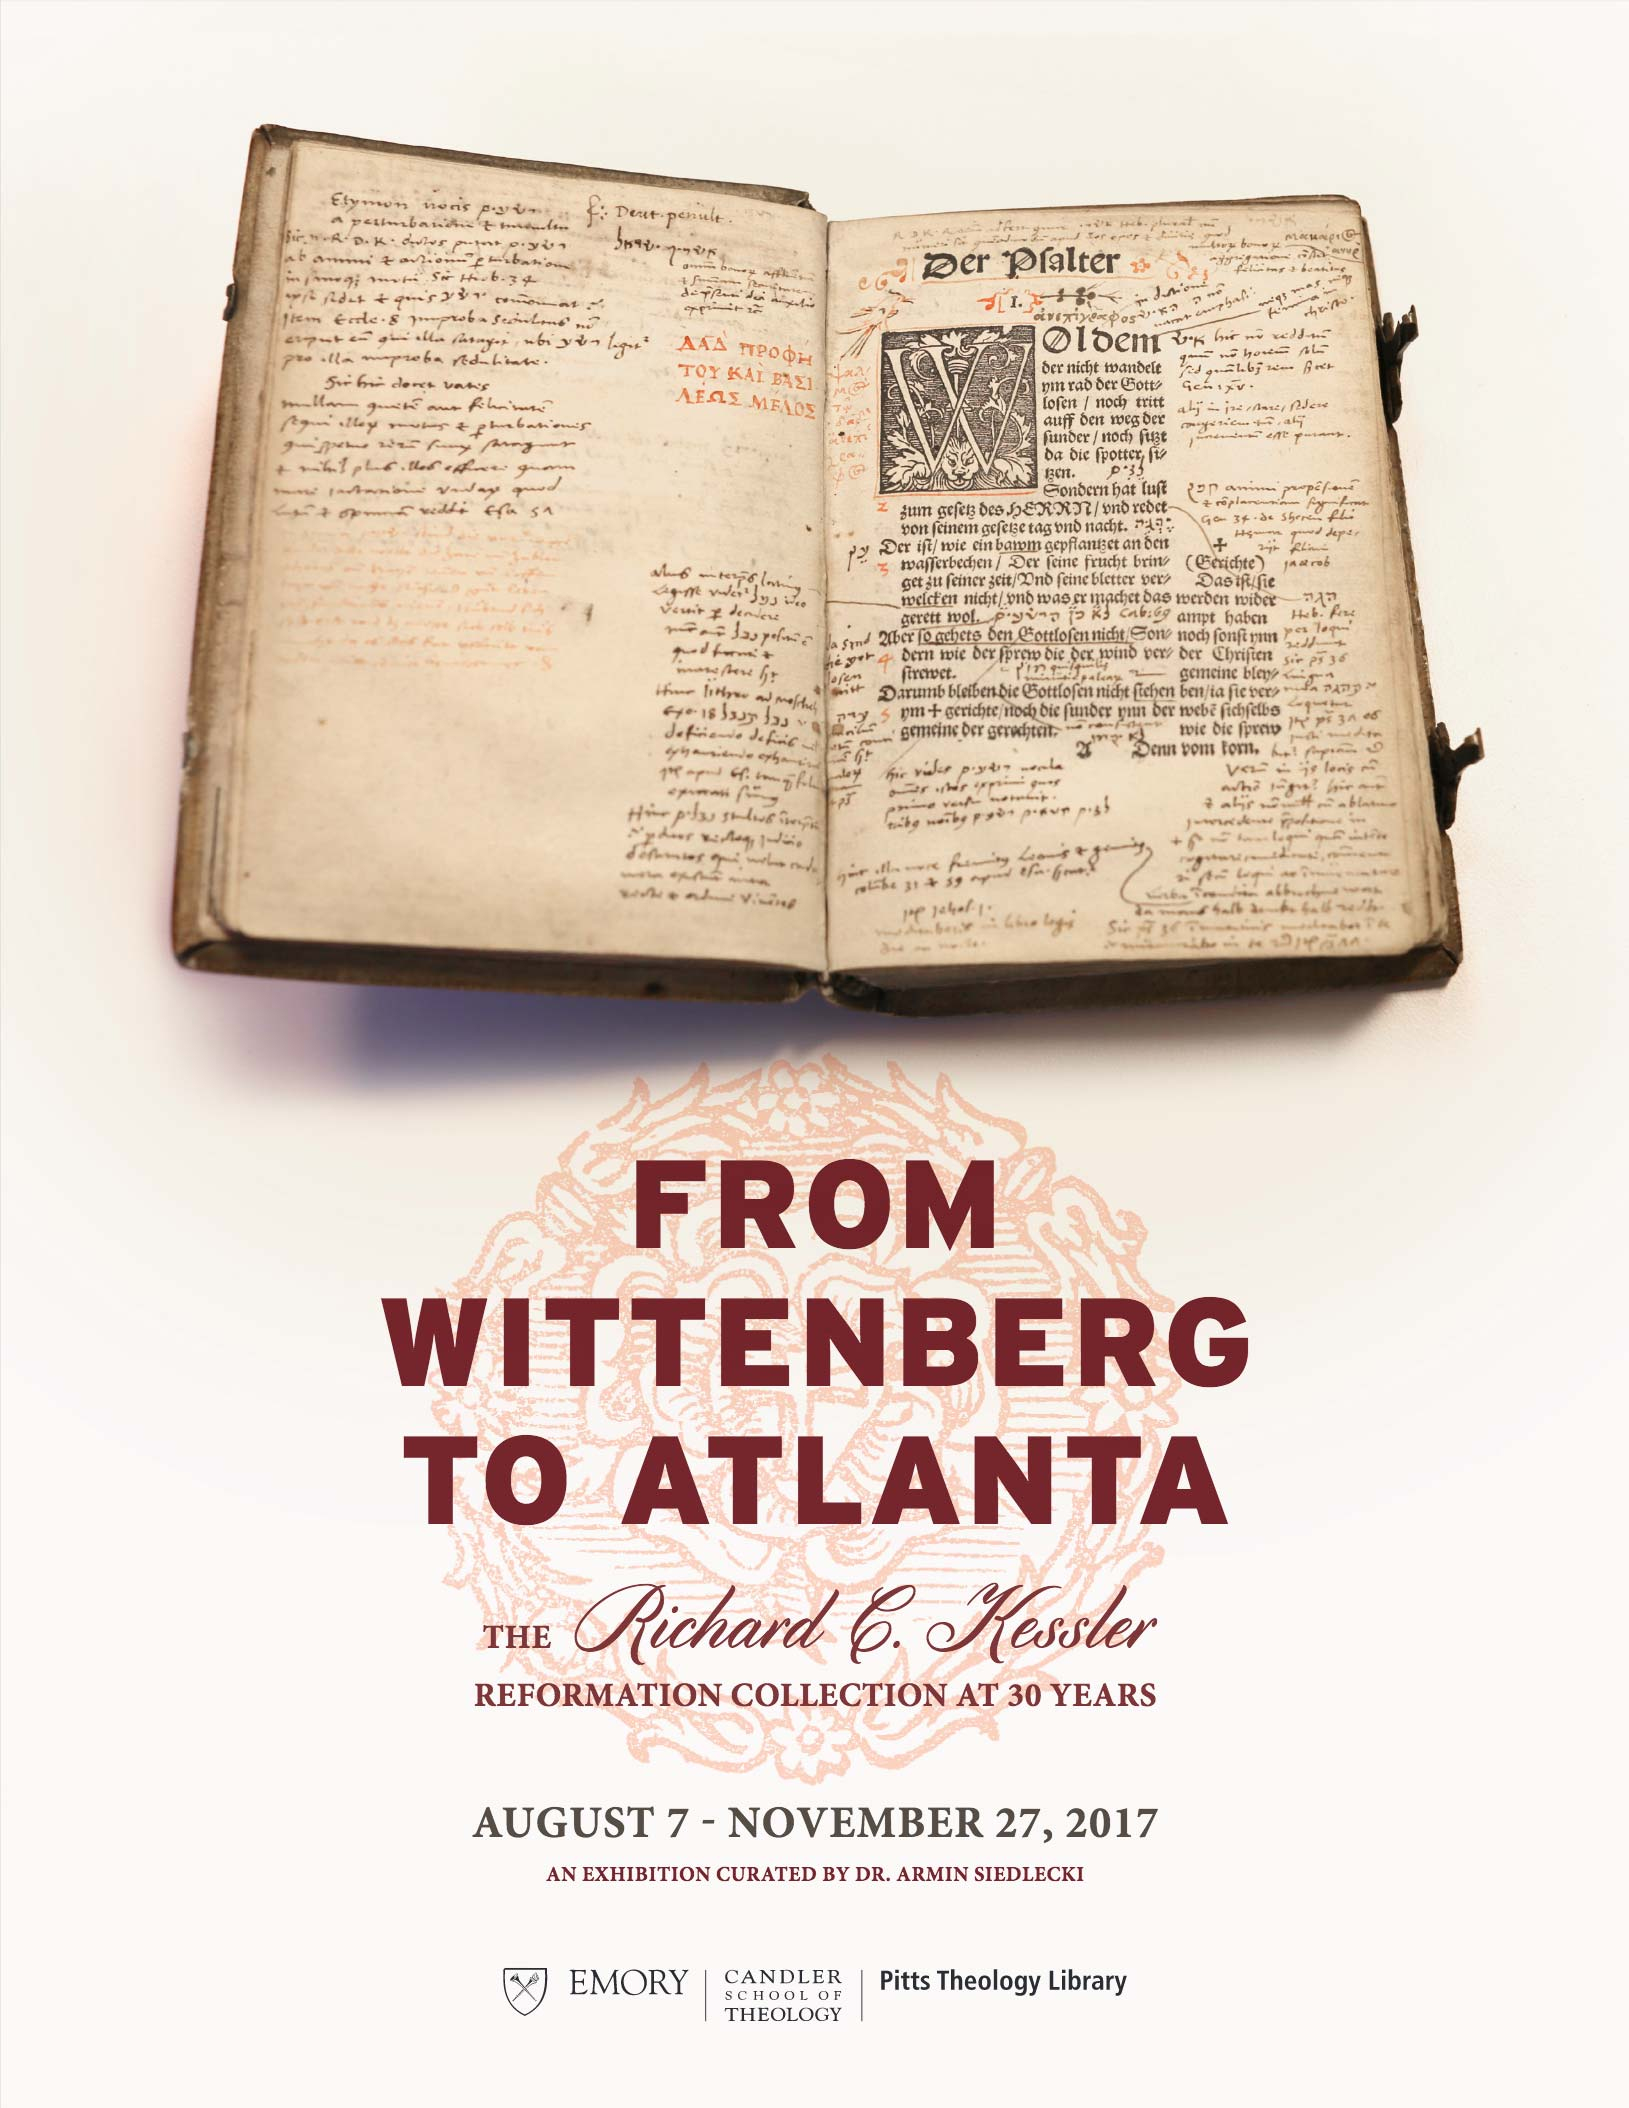 From Wittenberg to Atlanta: The Richard C. Kessler Reformation Collection at 30 Years